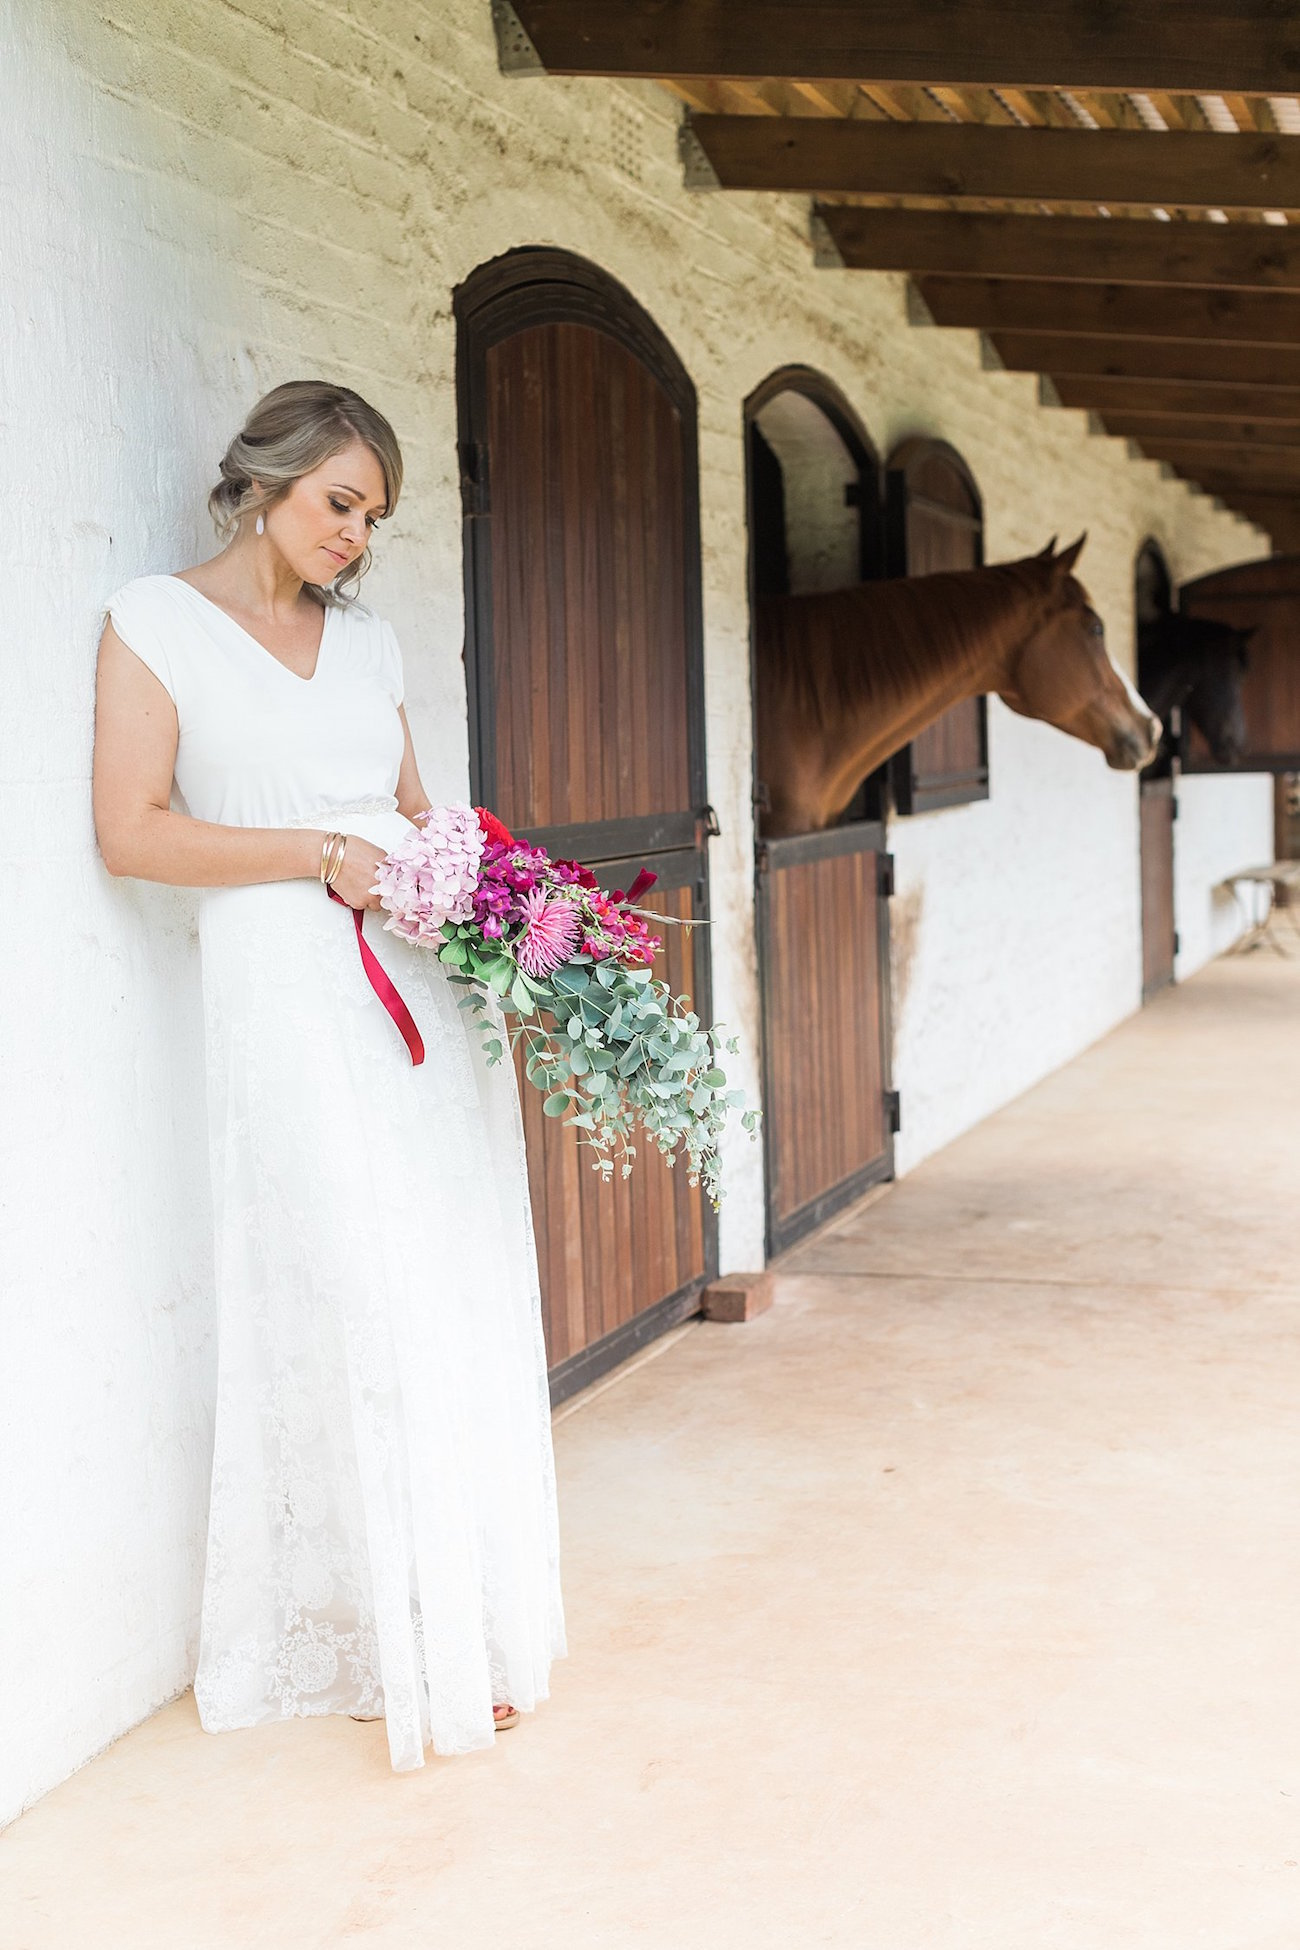 Bride at Stables | Image: Alicia Landman